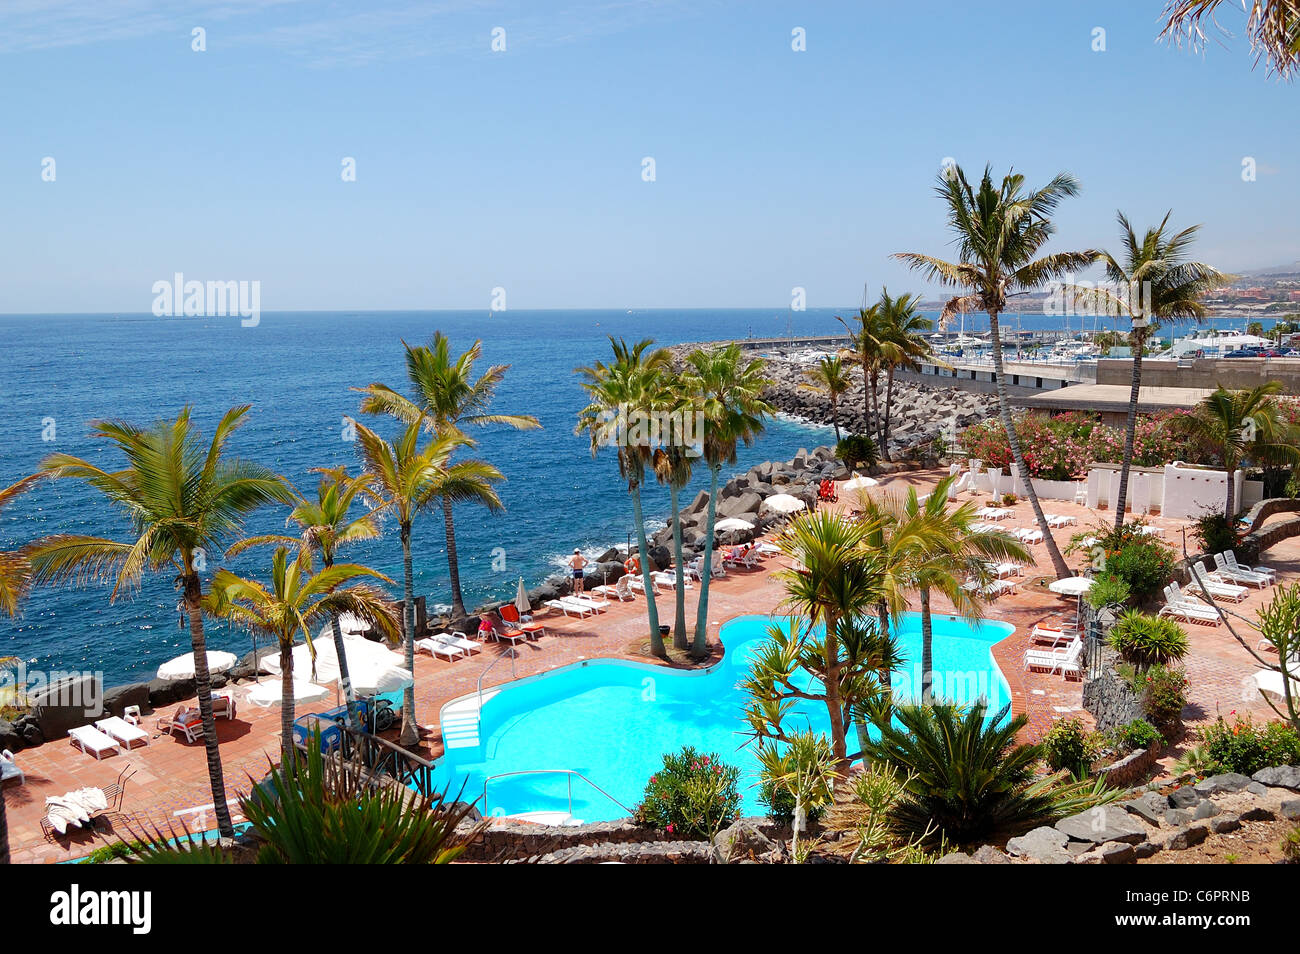 View On The Beach Palms And Swimming Pool Of Luxury Hotel Tenerife